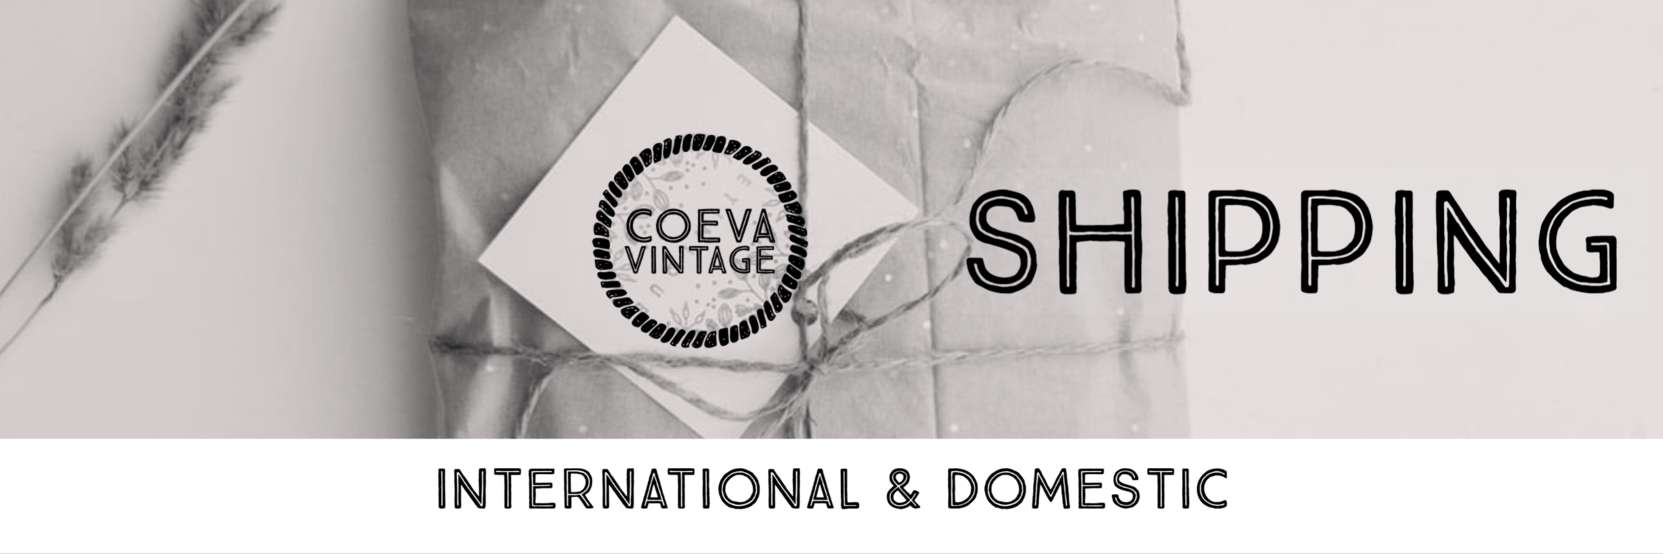 Coeva Vintage - Worldwide Shipping Available